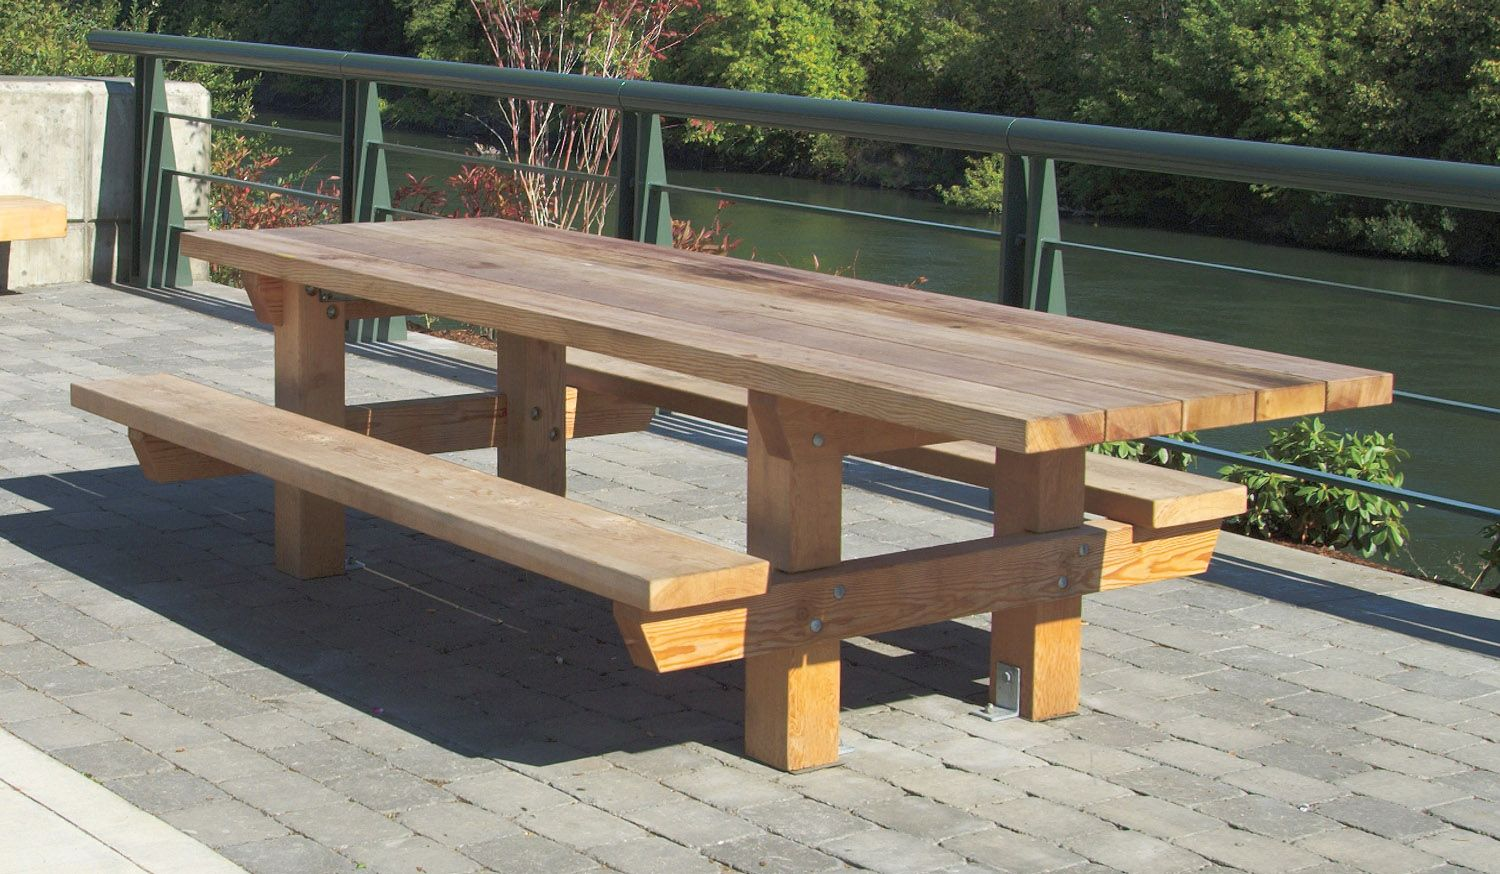 Image Result For Picnic Table Plans Build A Picnic Table Picnic Table Plans Diy Picnic Table